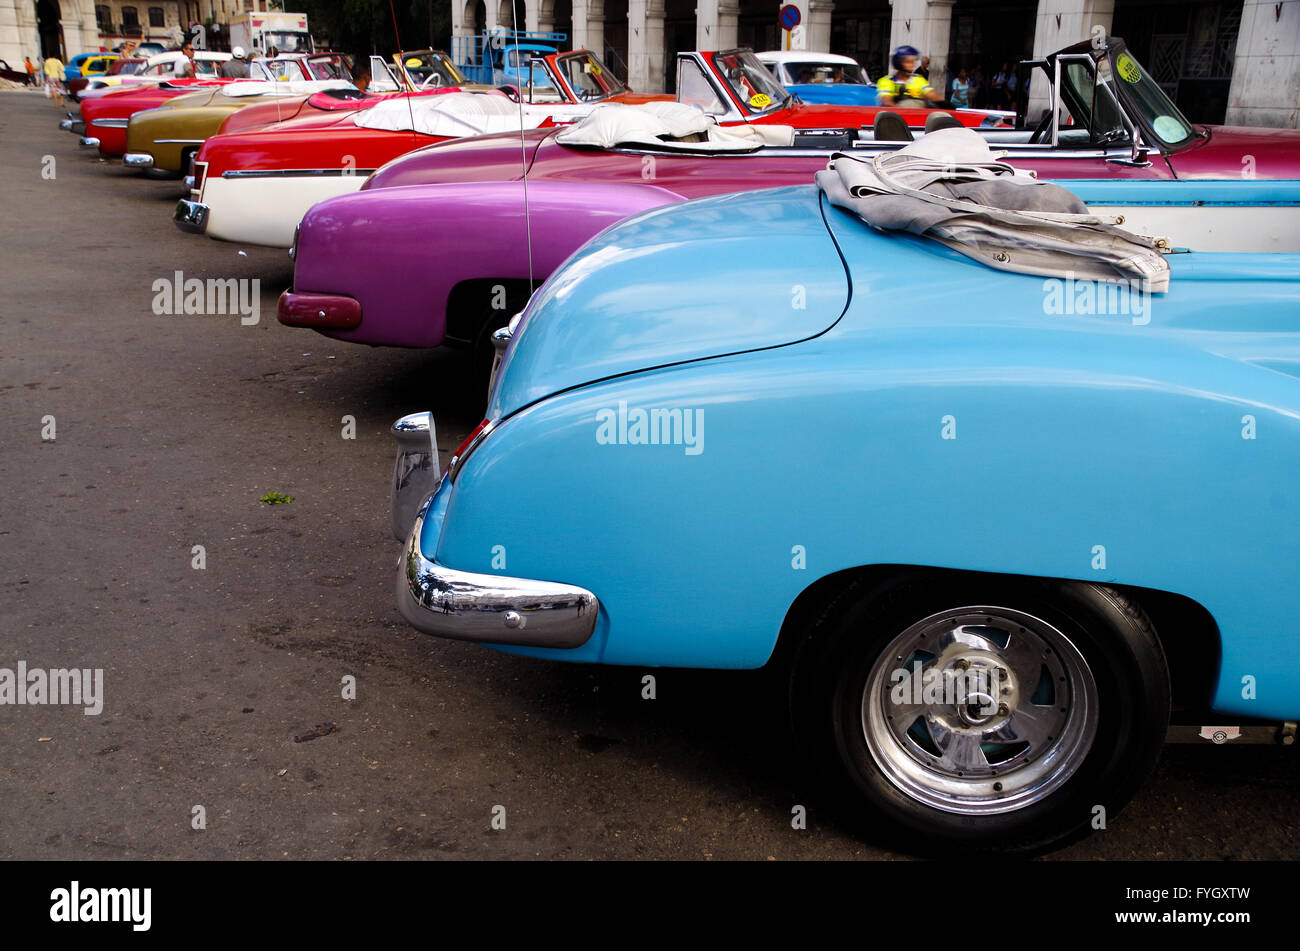 Vintage convertible cars parked in a row in Havana, Cuba - Stock Image